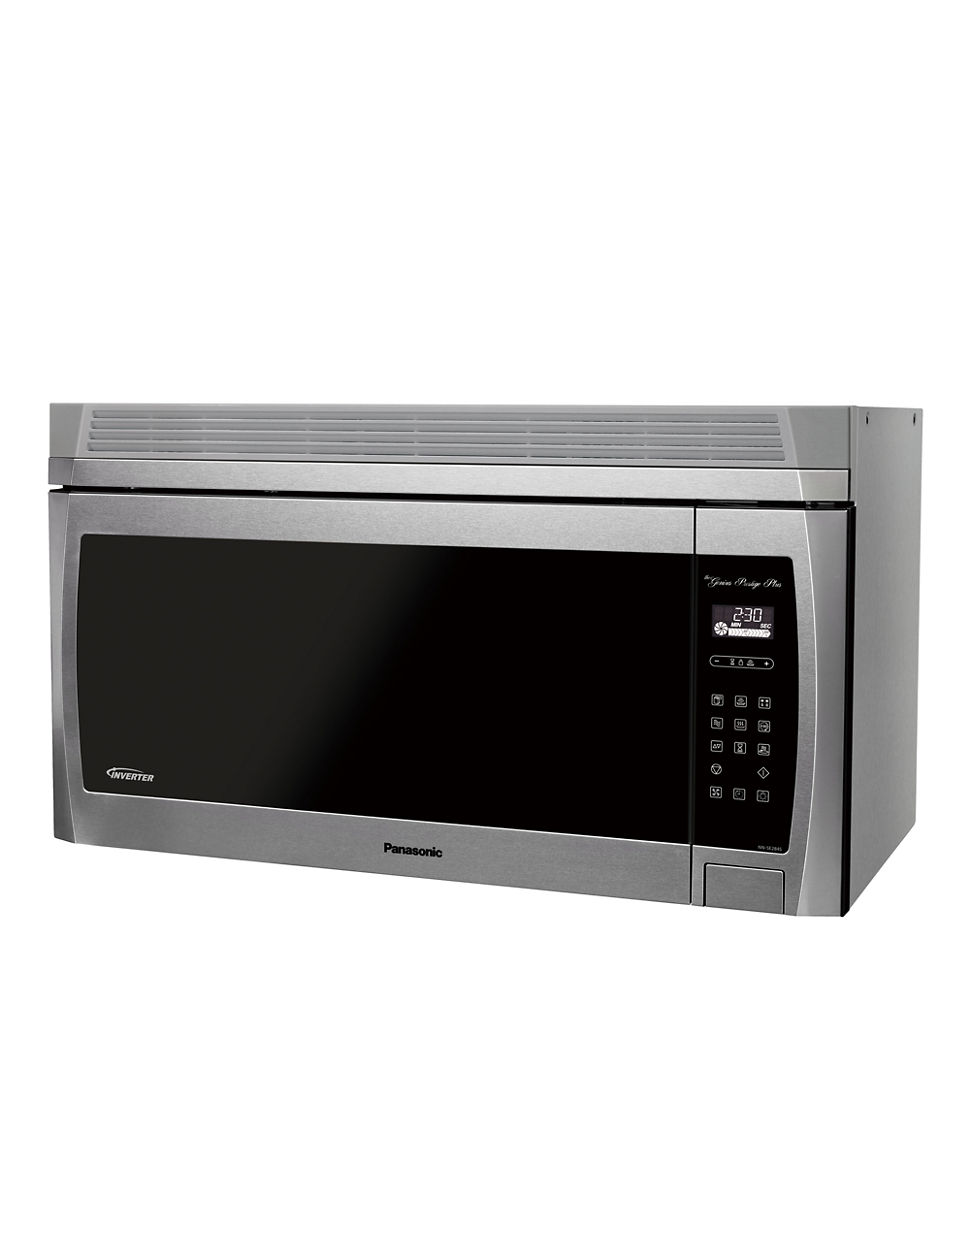 Genius Prestige Plus Over The Range Microwave Oven